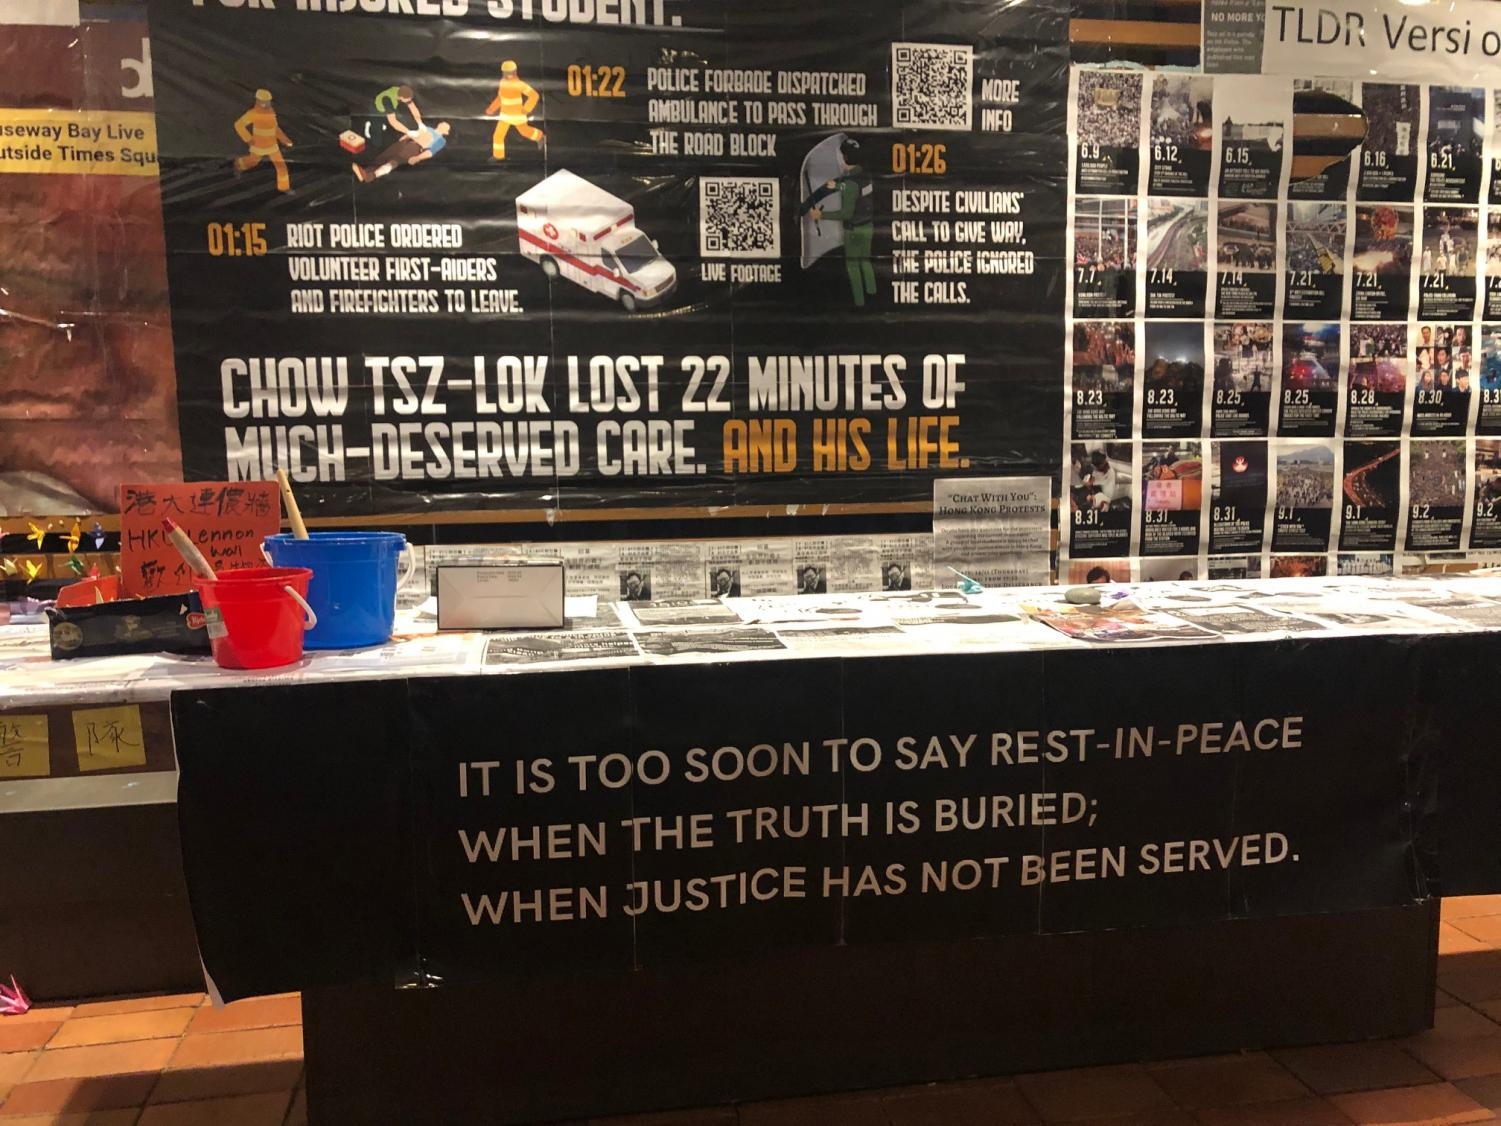 """a memorial with a banner reading """"it is too soon to say rest in peace when the truth is buried. when justice has not been served."""" above is a sign reading """"chow tsz-lok lost 22 minutes of much-deserved care. and his life."""""""